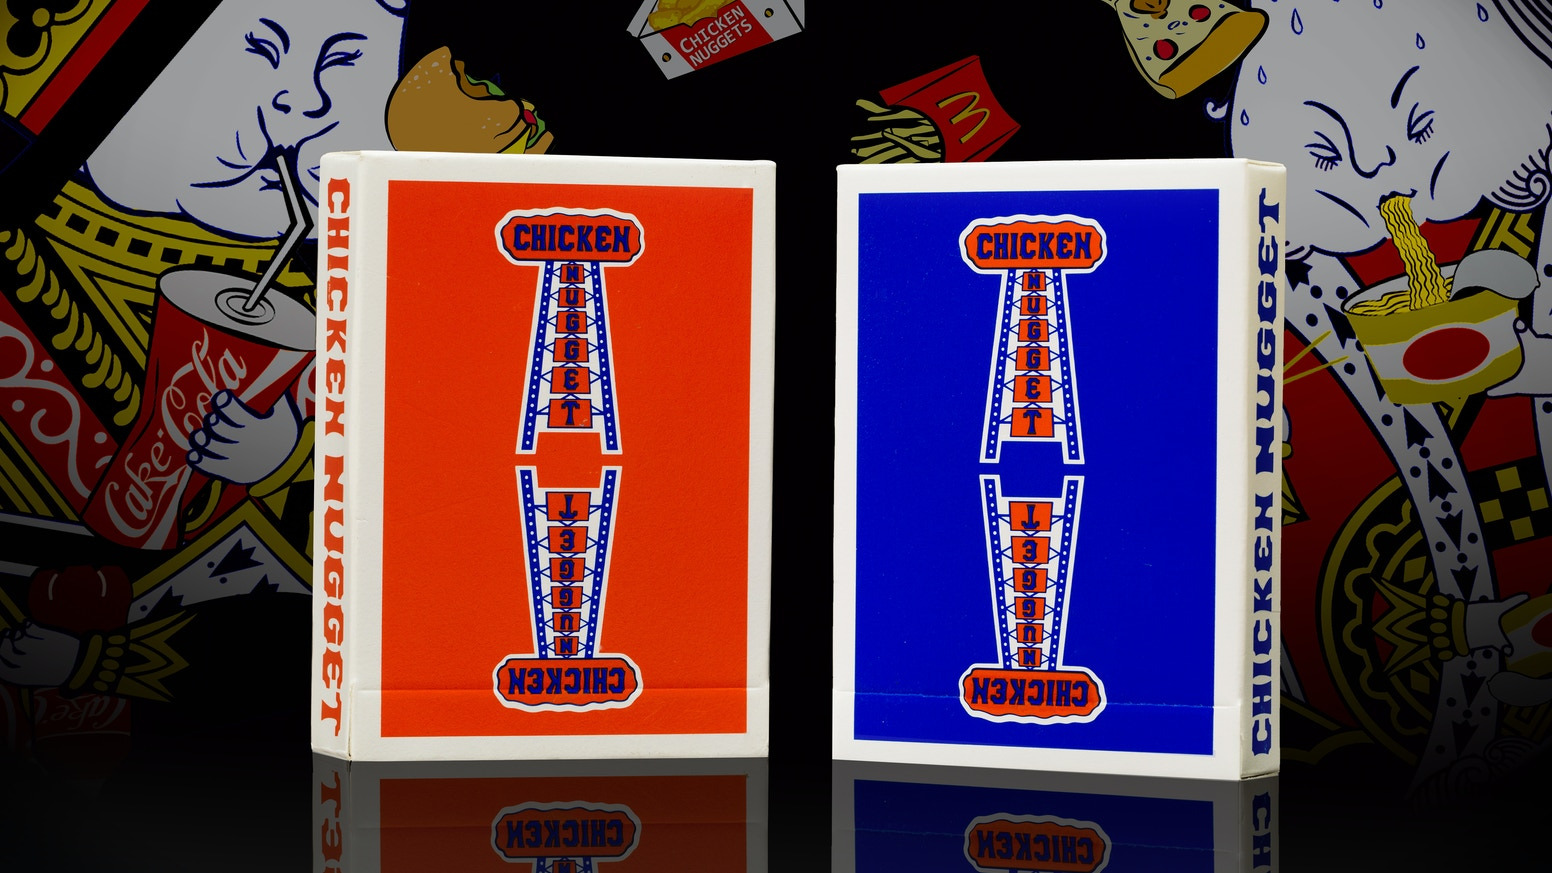 Vintage. High quality. Hilarious. A modern rendition of the legendary Jerry's Nugget playing cards. Meet the Chicken Nuggets.